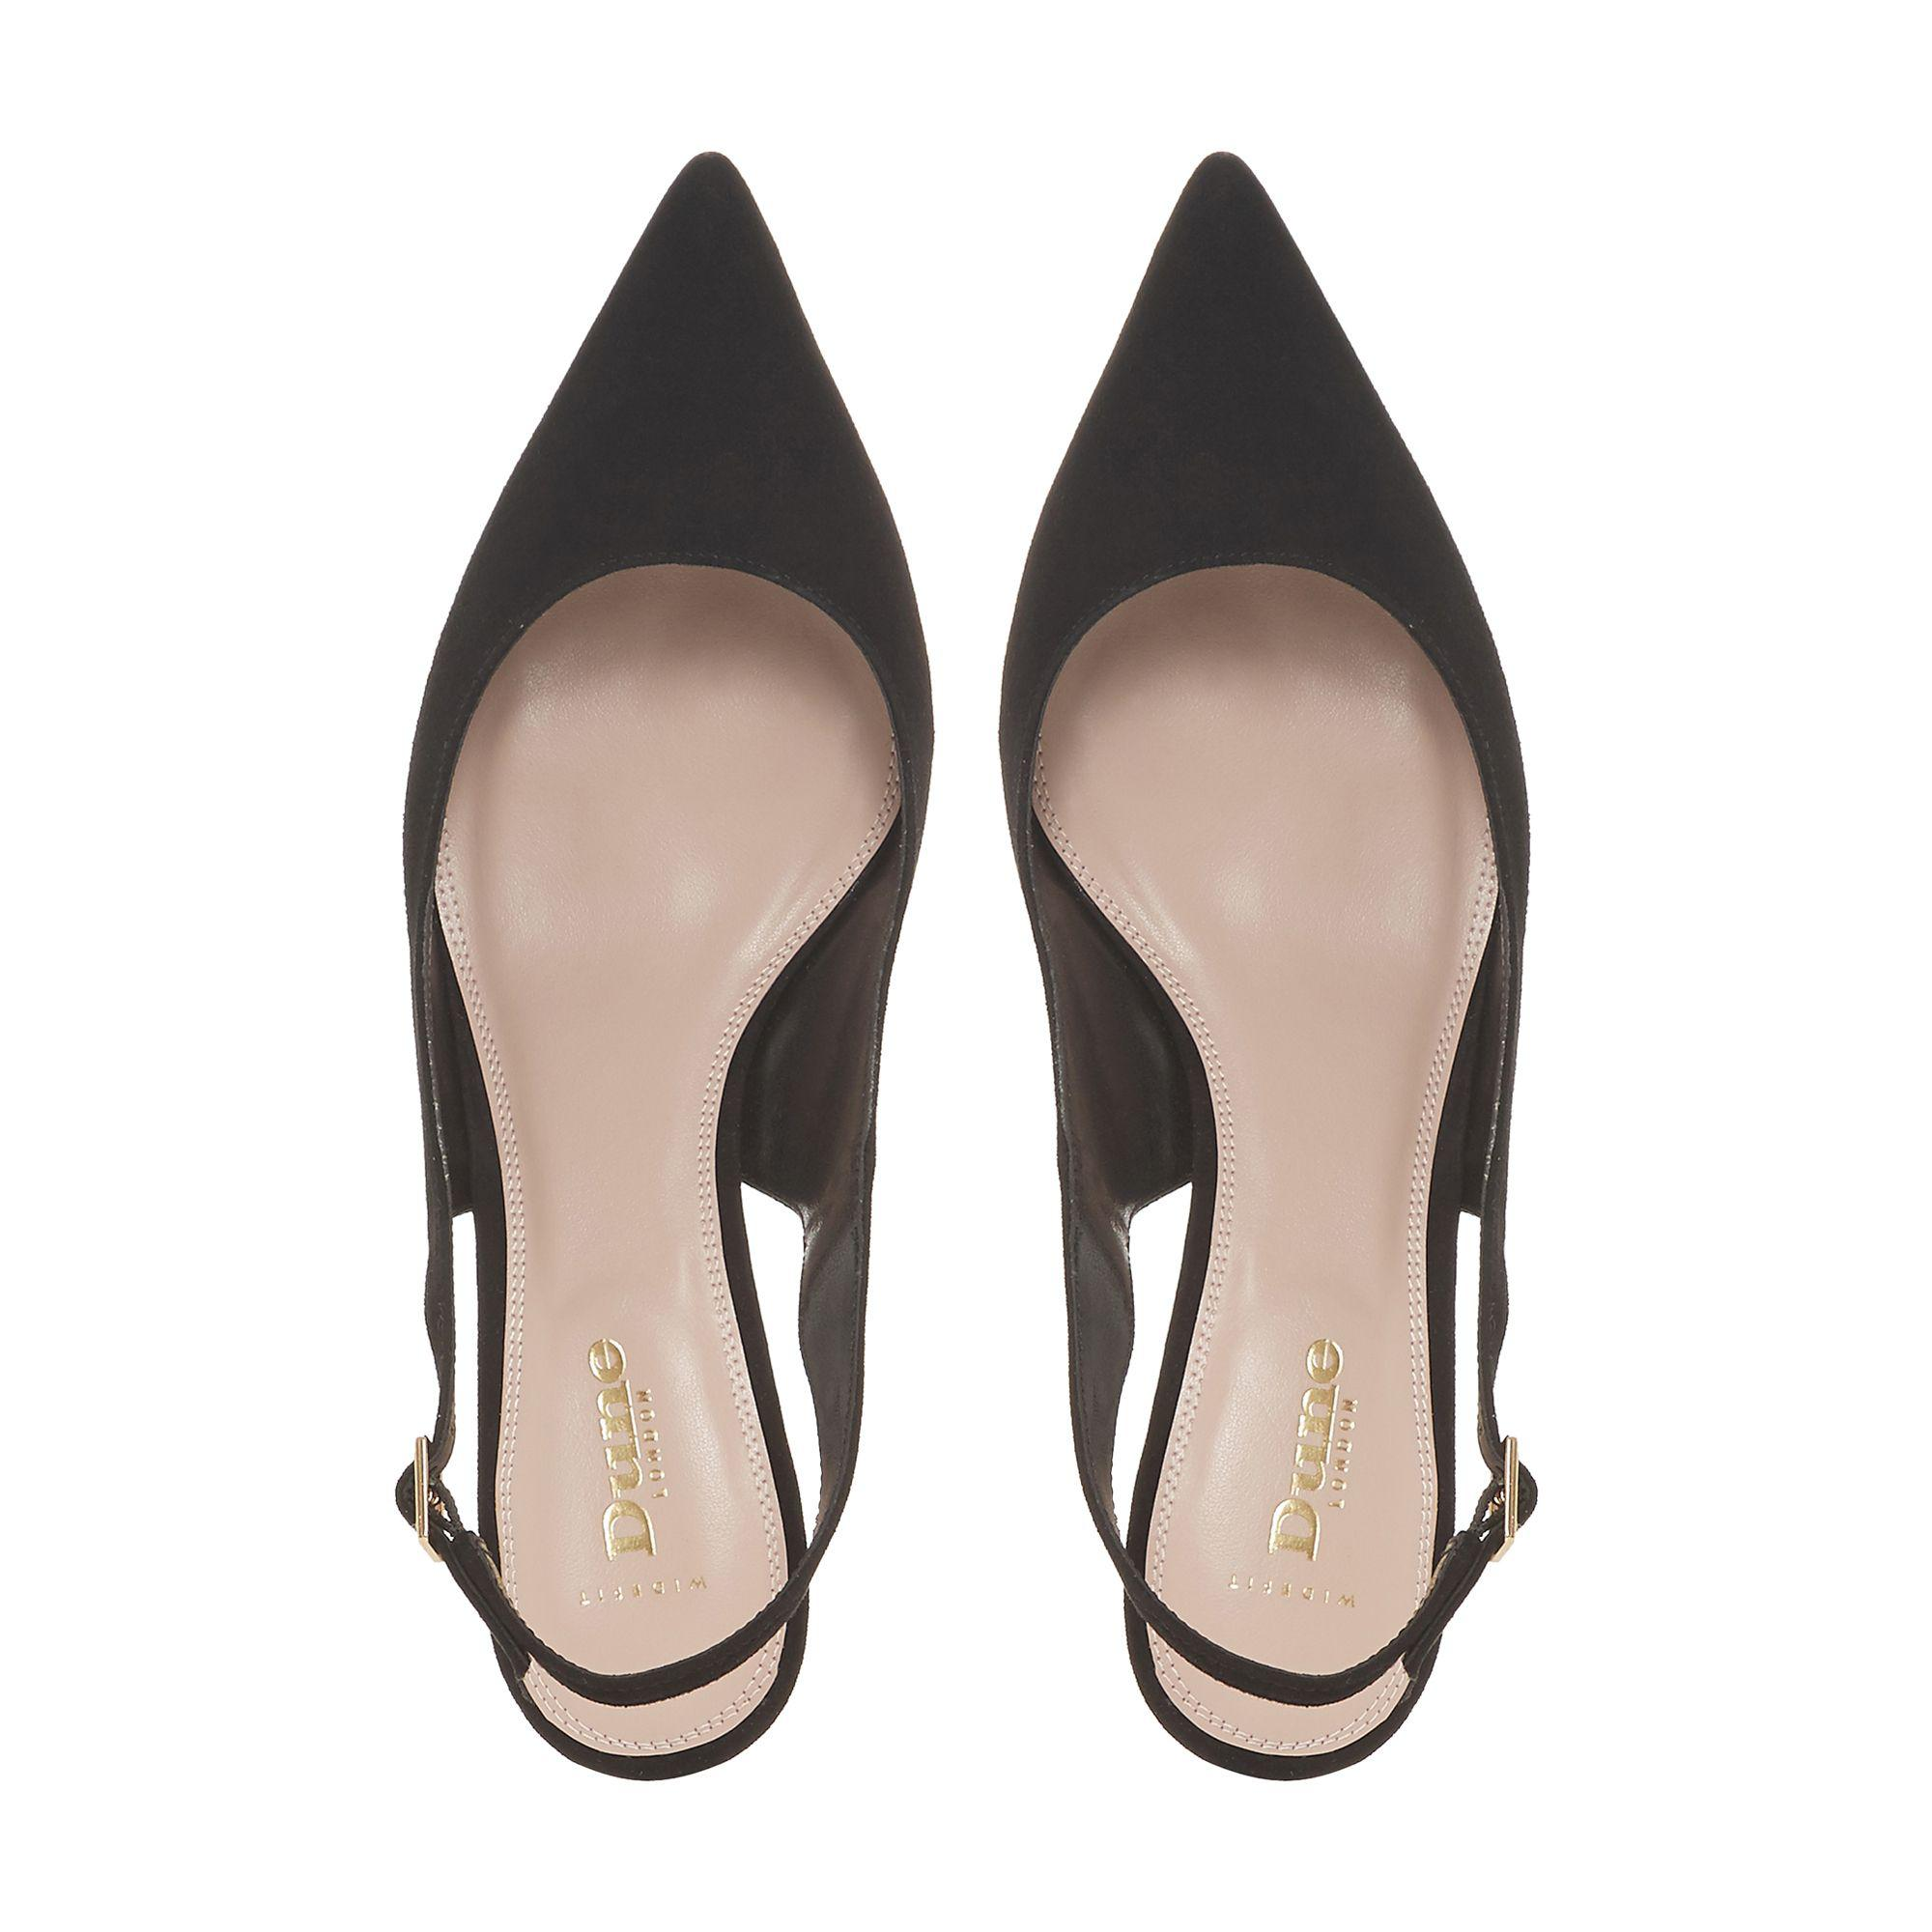 11dc8499374 Dune Casandra Kitten Heel Slingback Court Shoes in Black - Lyst